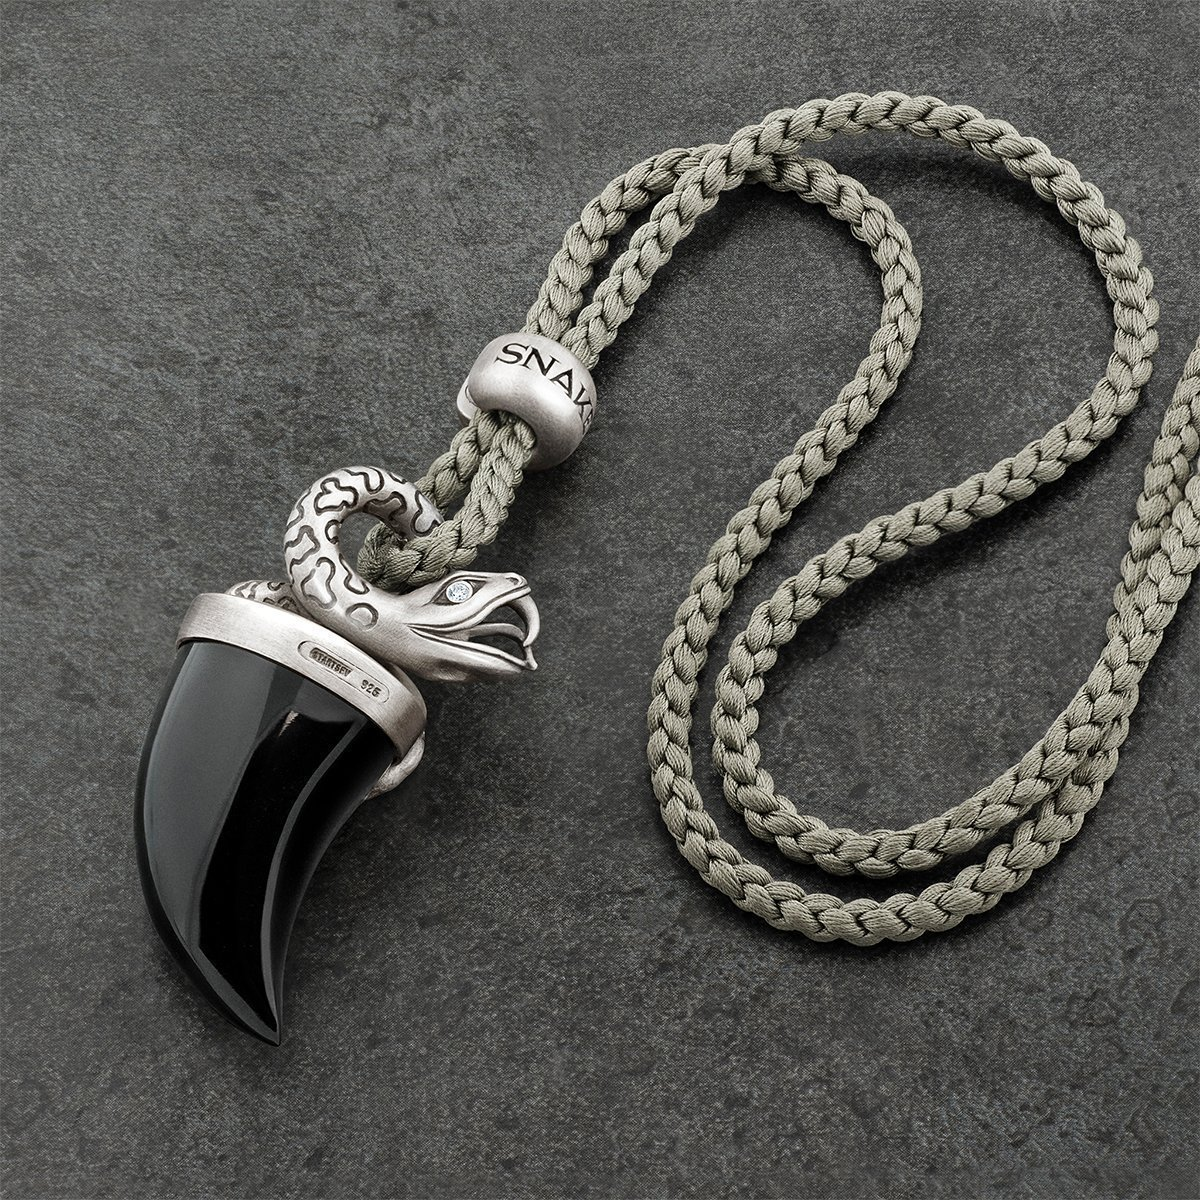 Sterling Silver, Onyx Tusk & Diamond Snake Pendant Necklace | Snake Bones